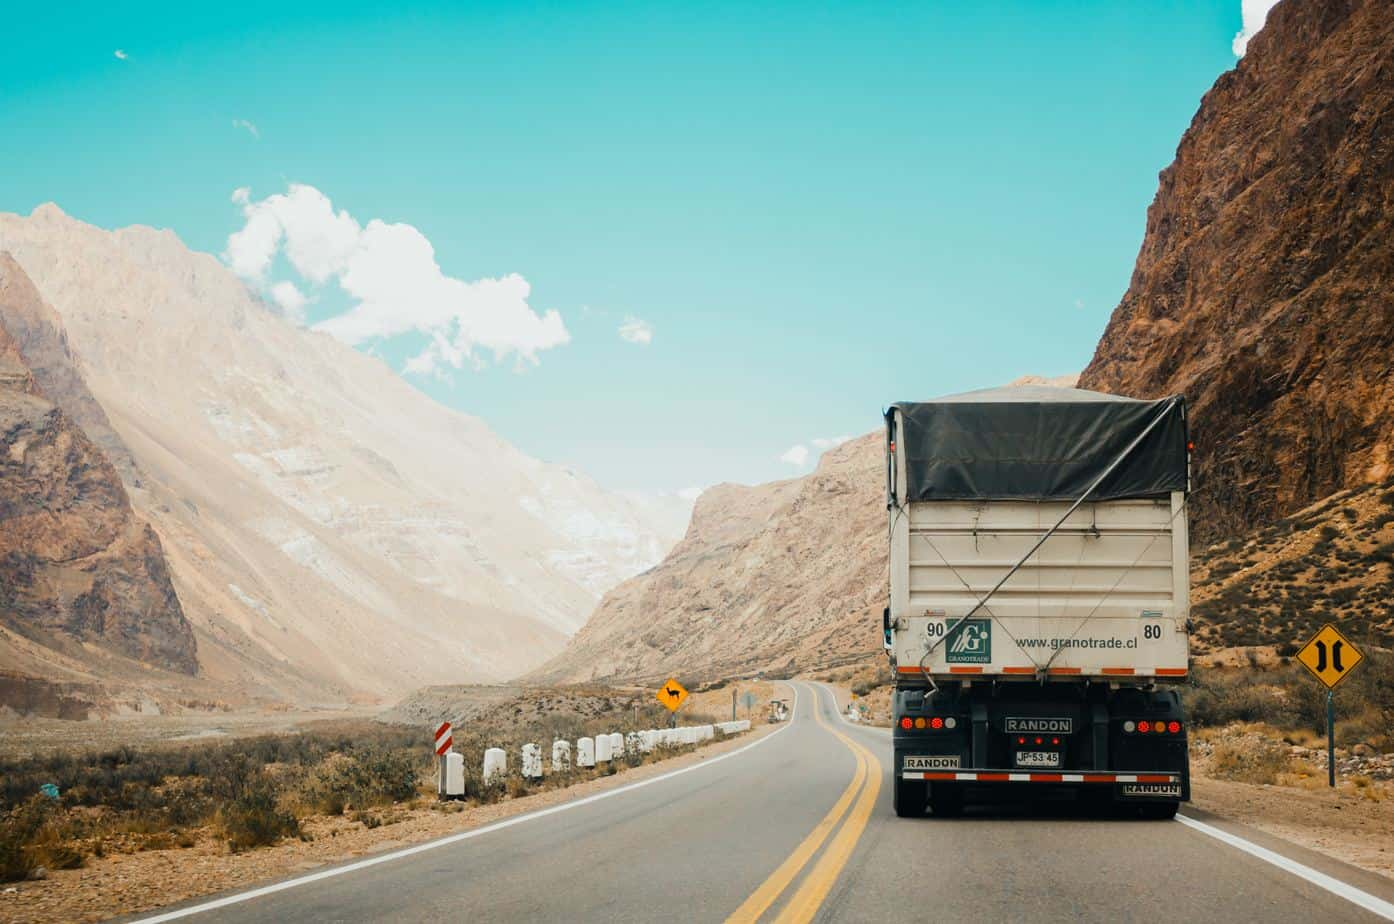 truck driving tips - truck hauling minerals into narrow mountain pass